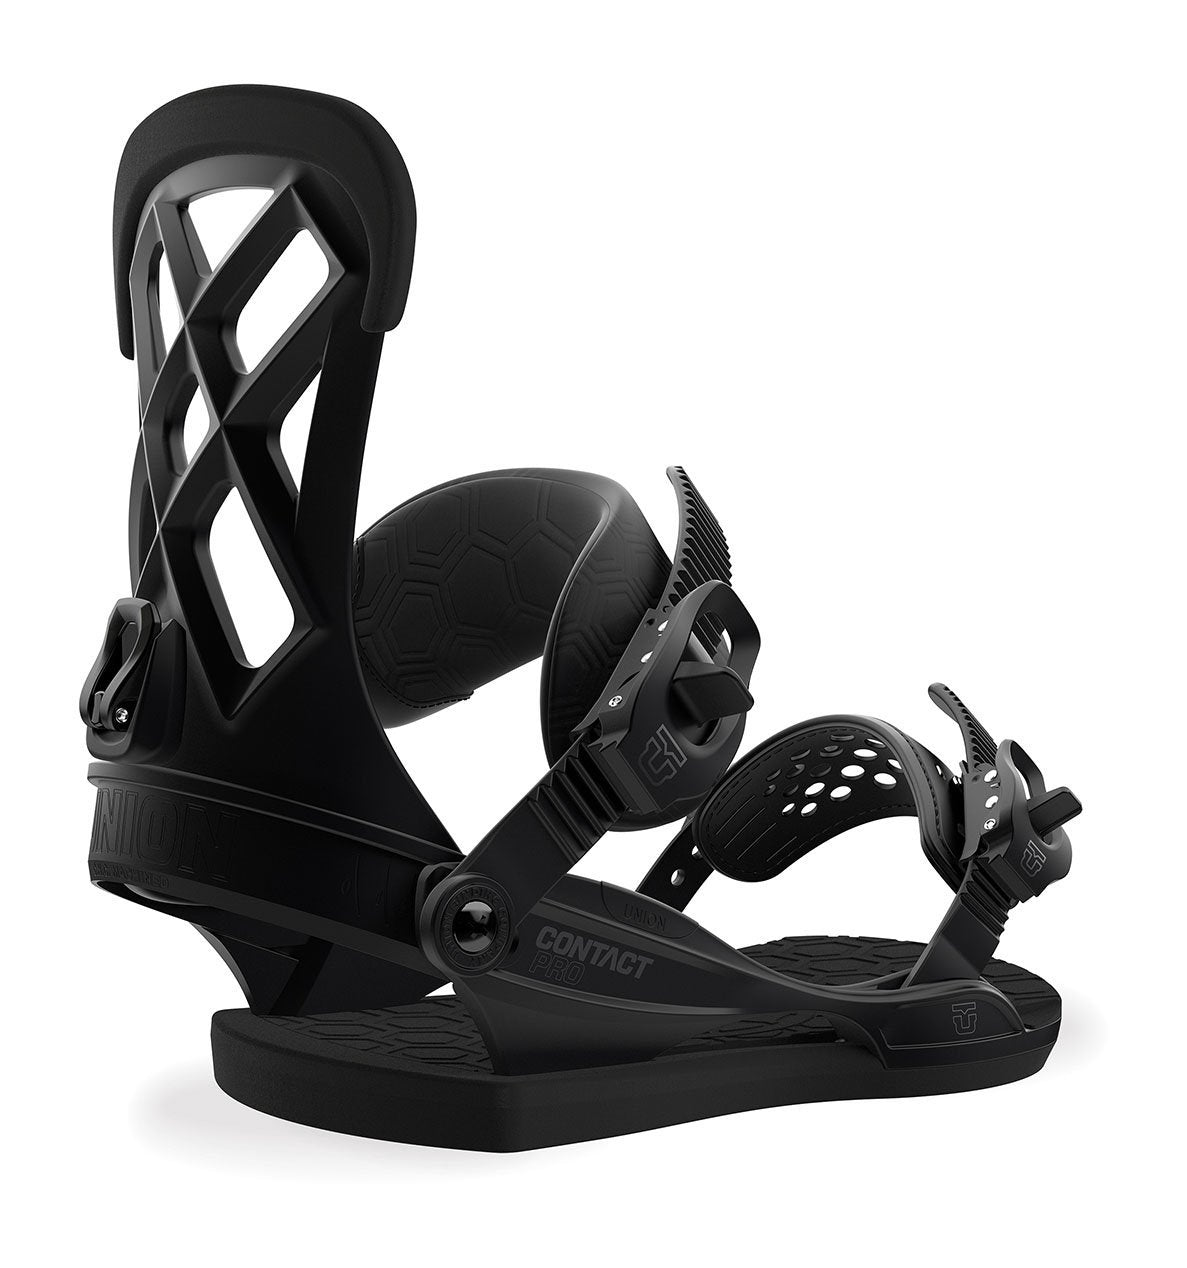 union bindings Union contact pro snowboardbinding 2019 fra blacksnow.dk